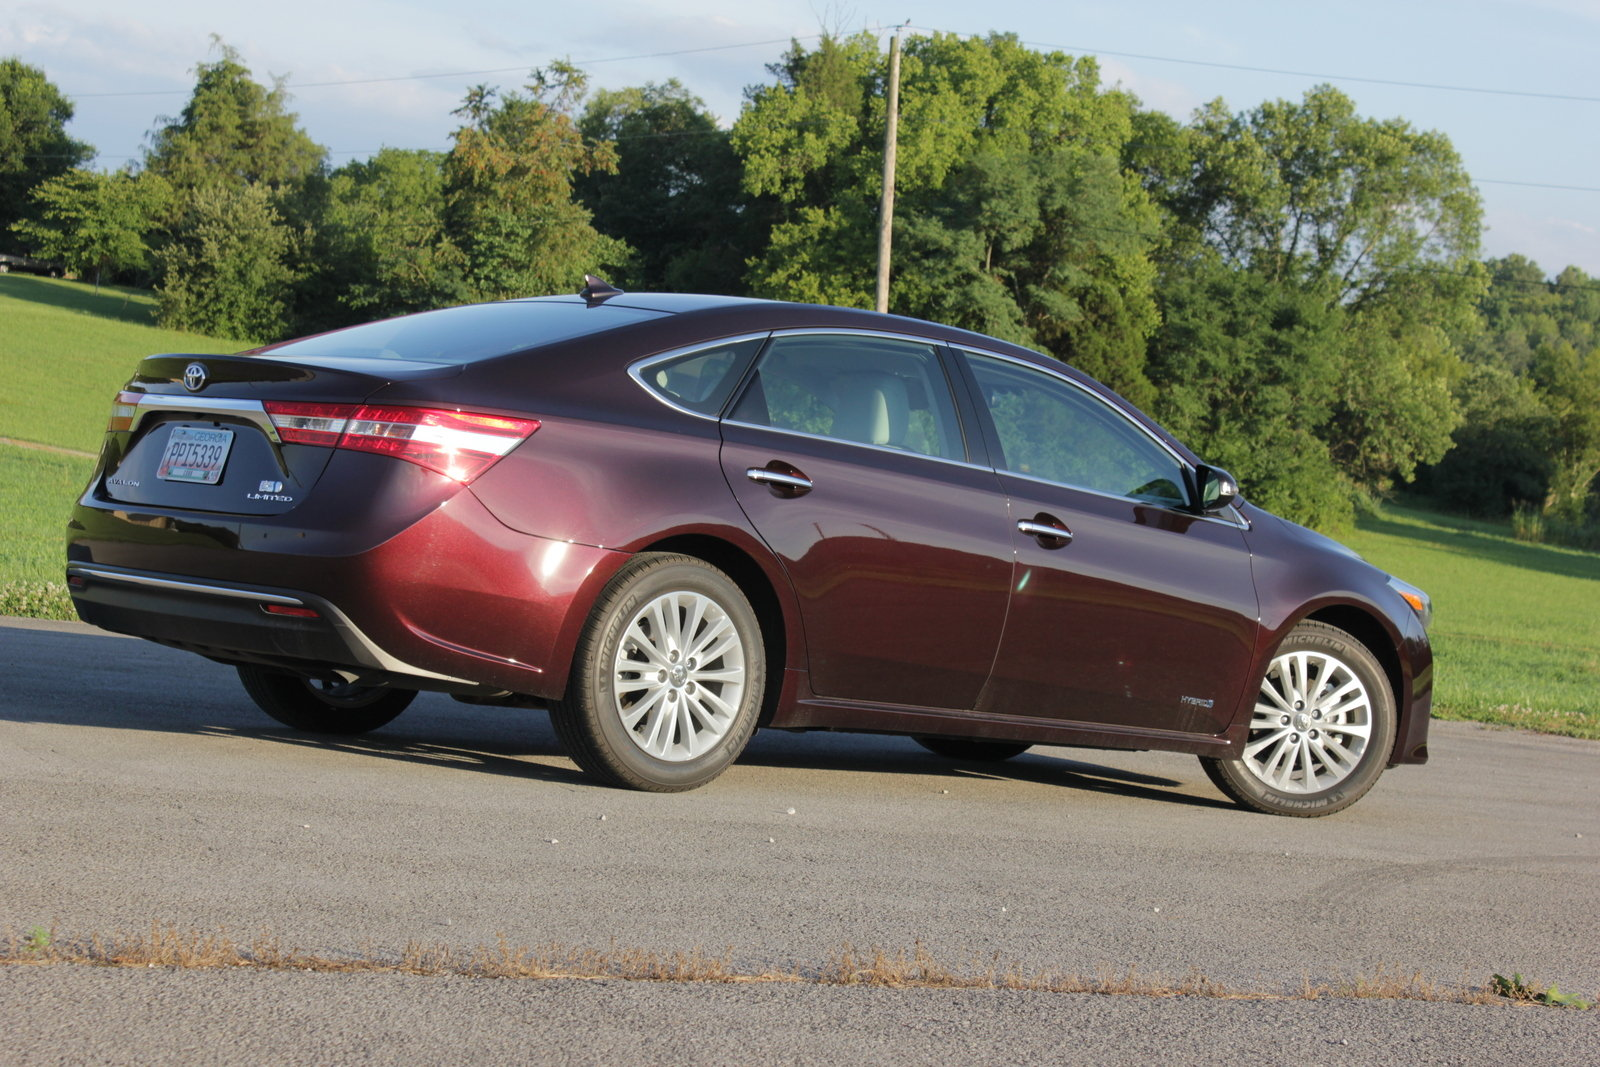 2014 toyota avalon hybrid driven picture 561049 car review top speed. Black Bedroom Furniture Sets. Home Design Ideas